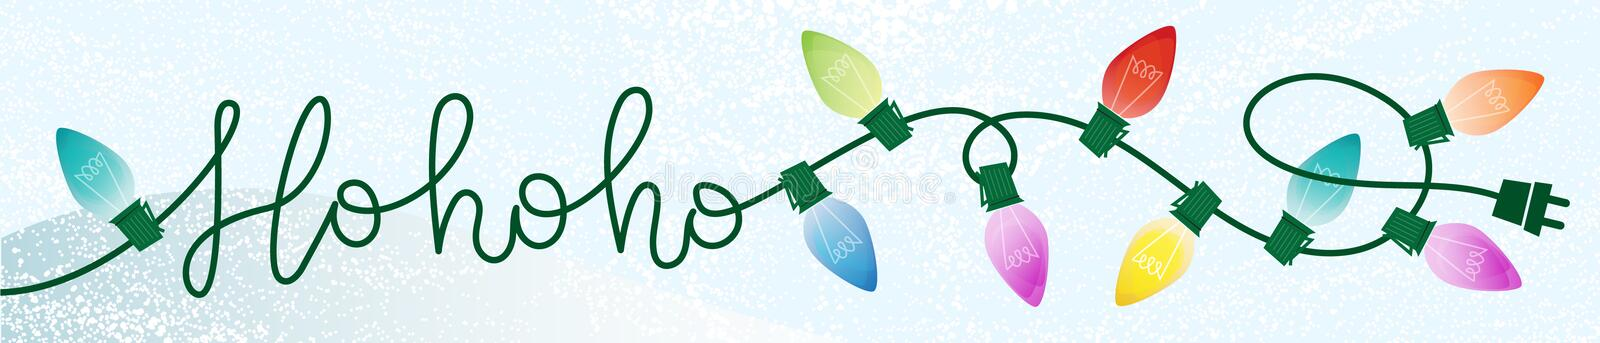 Retro Ho ho ho Christmas Writing Lights Snowy Background. Easy edit vector file royalty free illustration